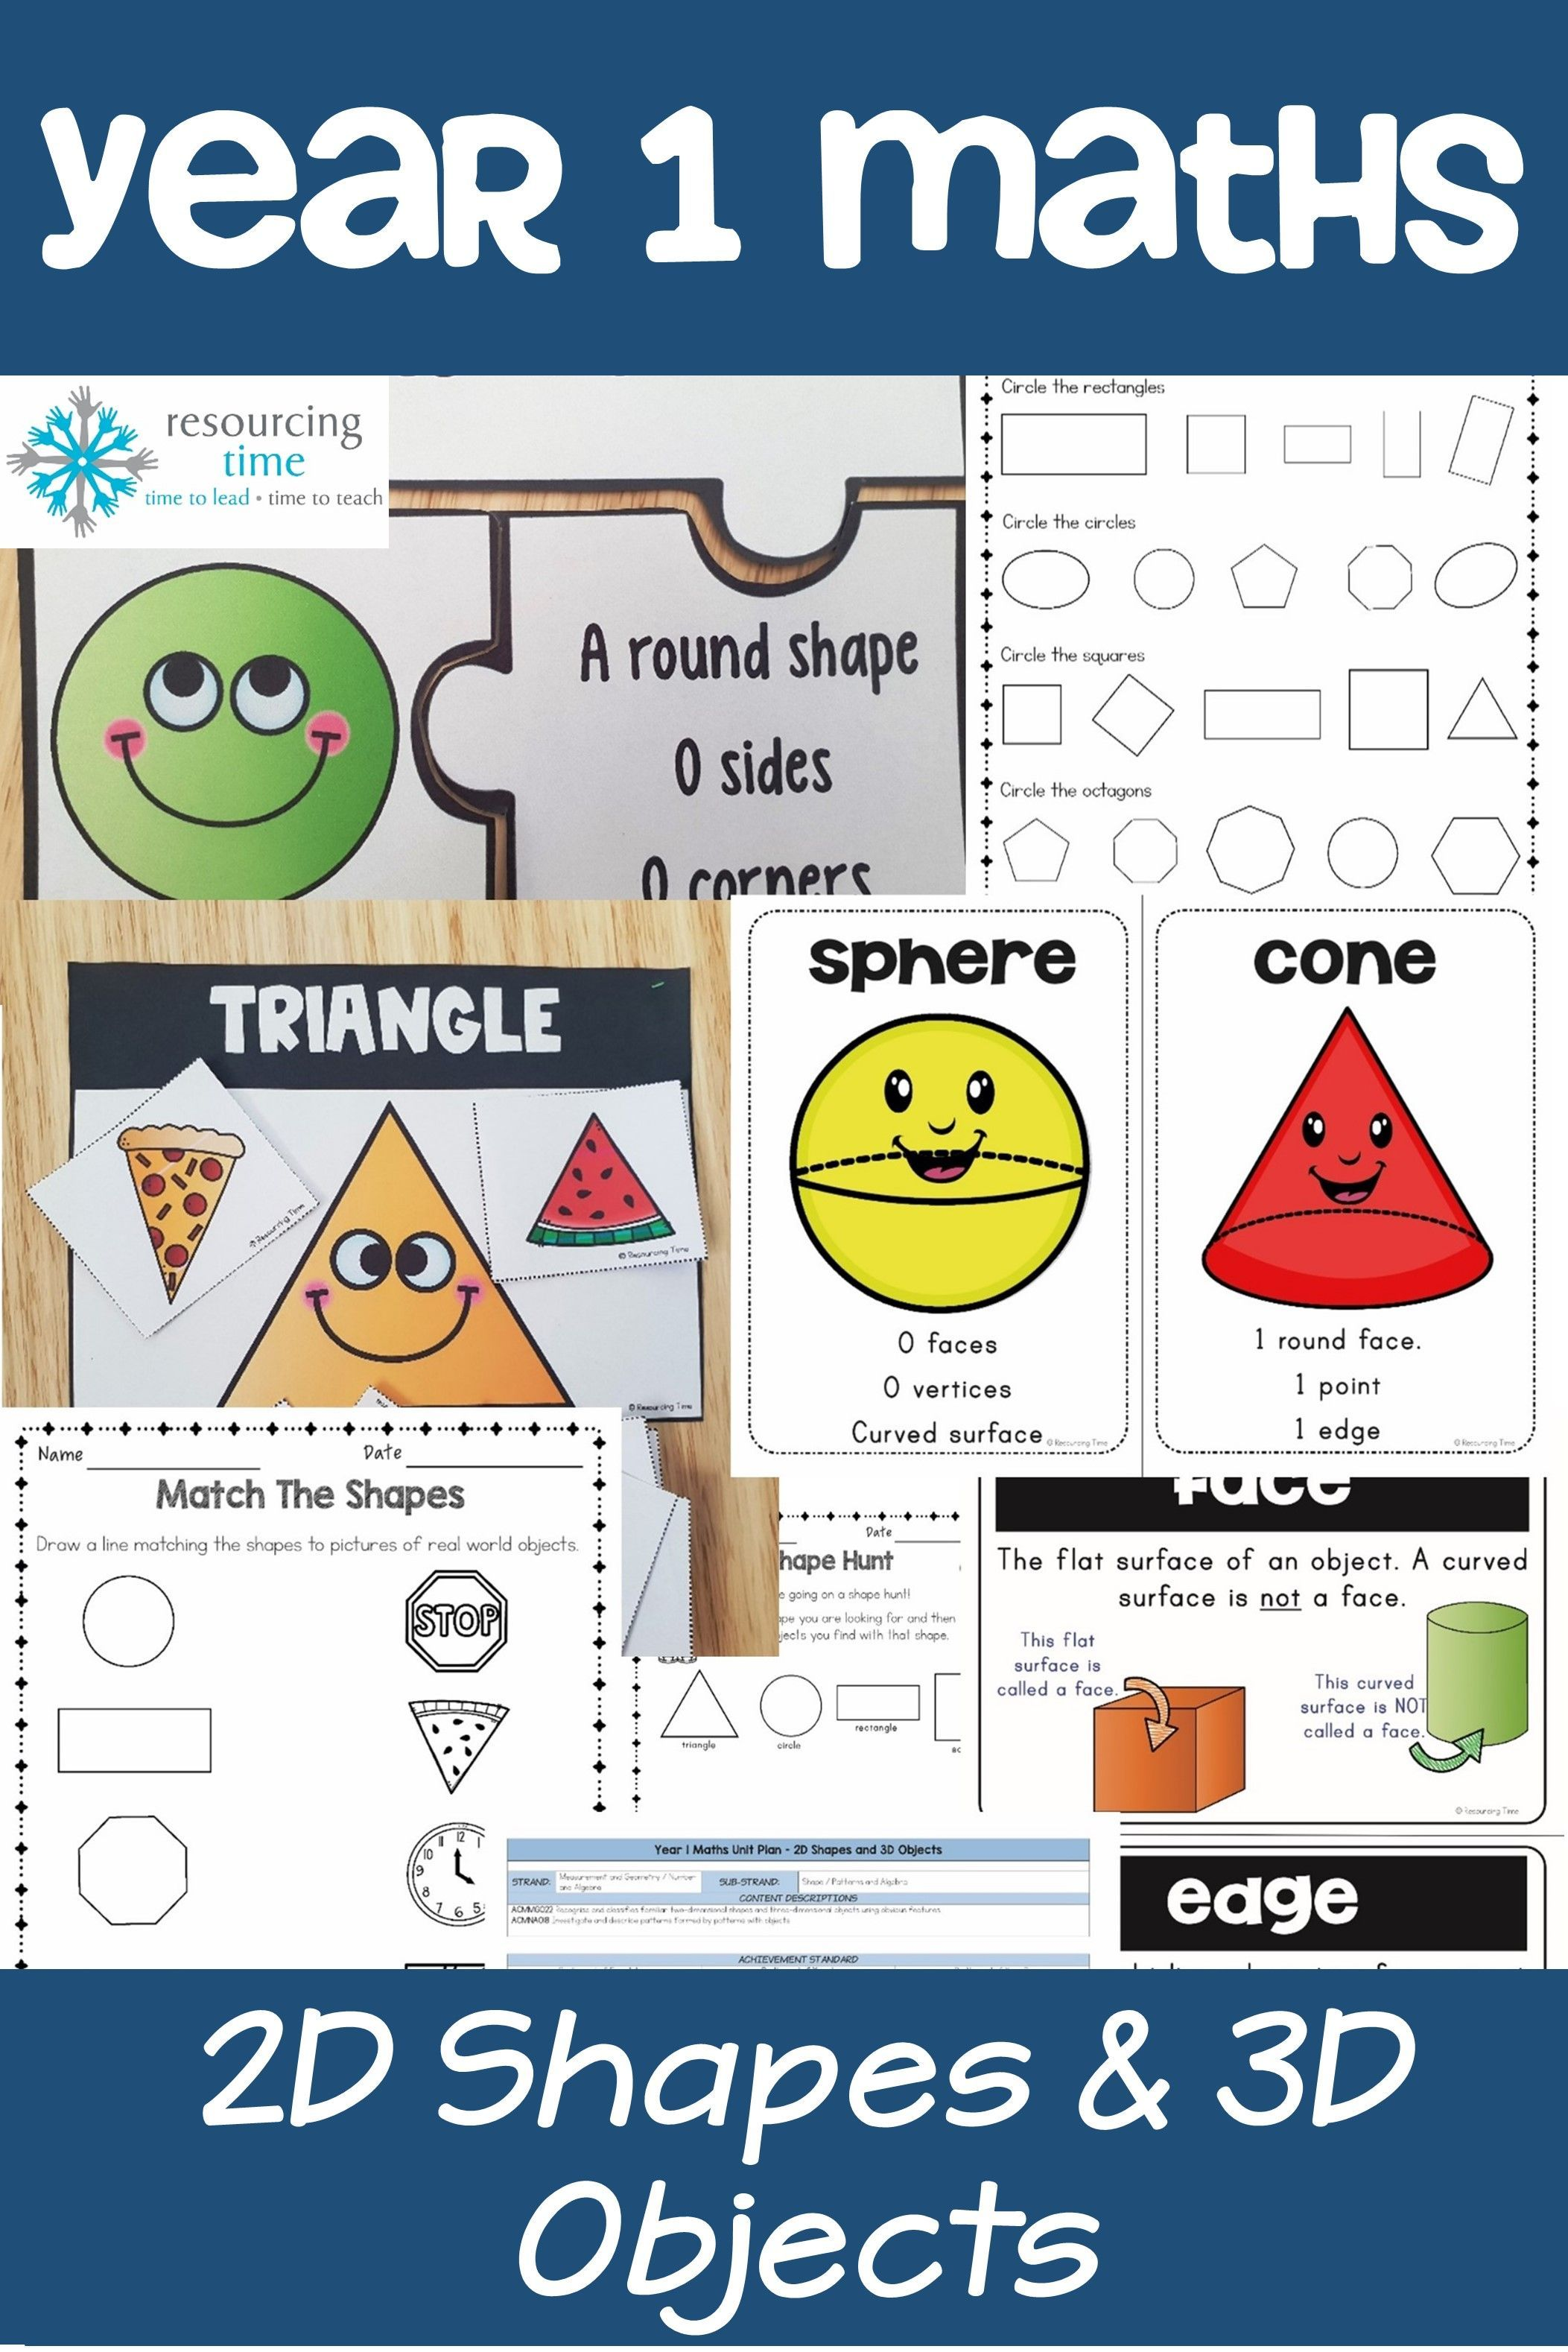 Year 1 Shapes And Objects Program